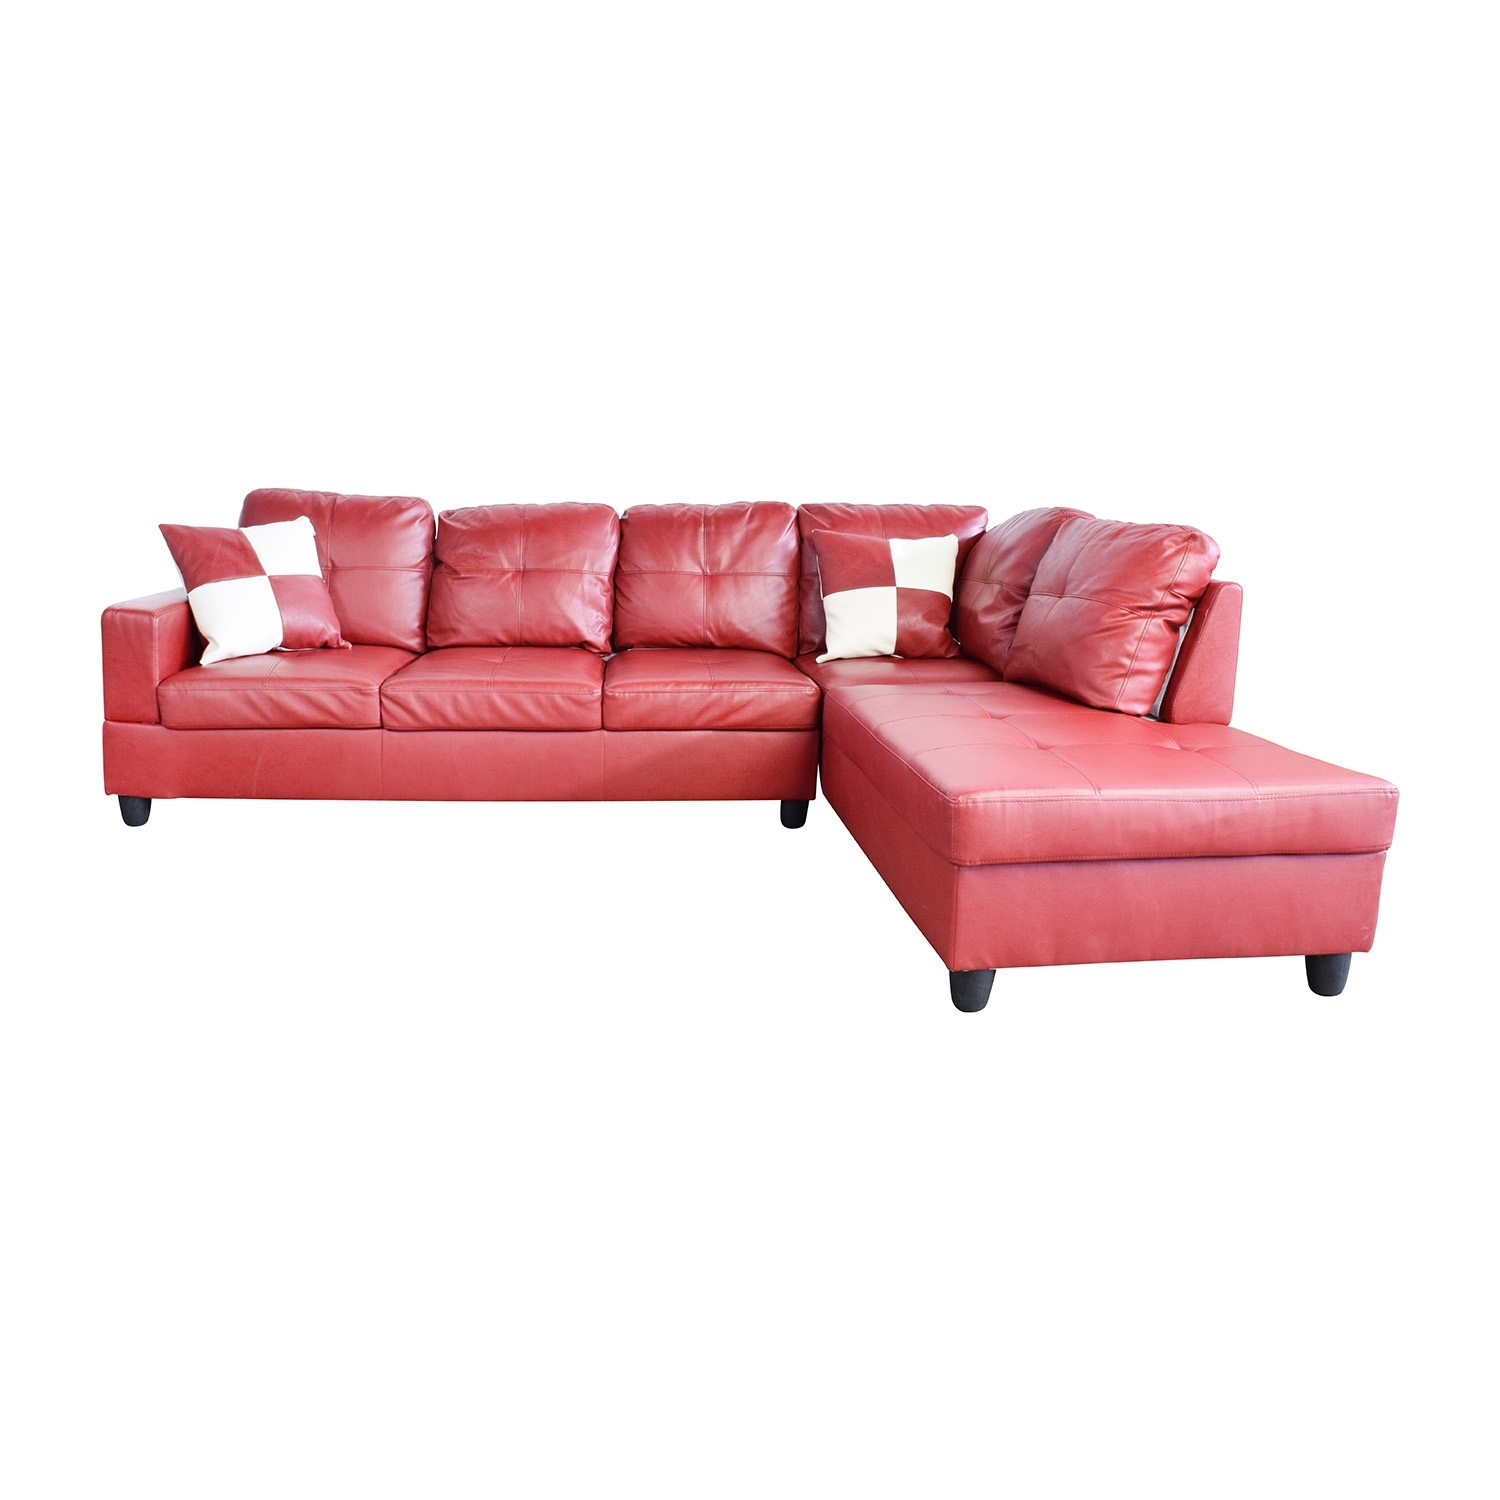 76% Off - Beverly Furniture Beverly Furniture Red Faux Leather inside Red Faux Leather Sectionals